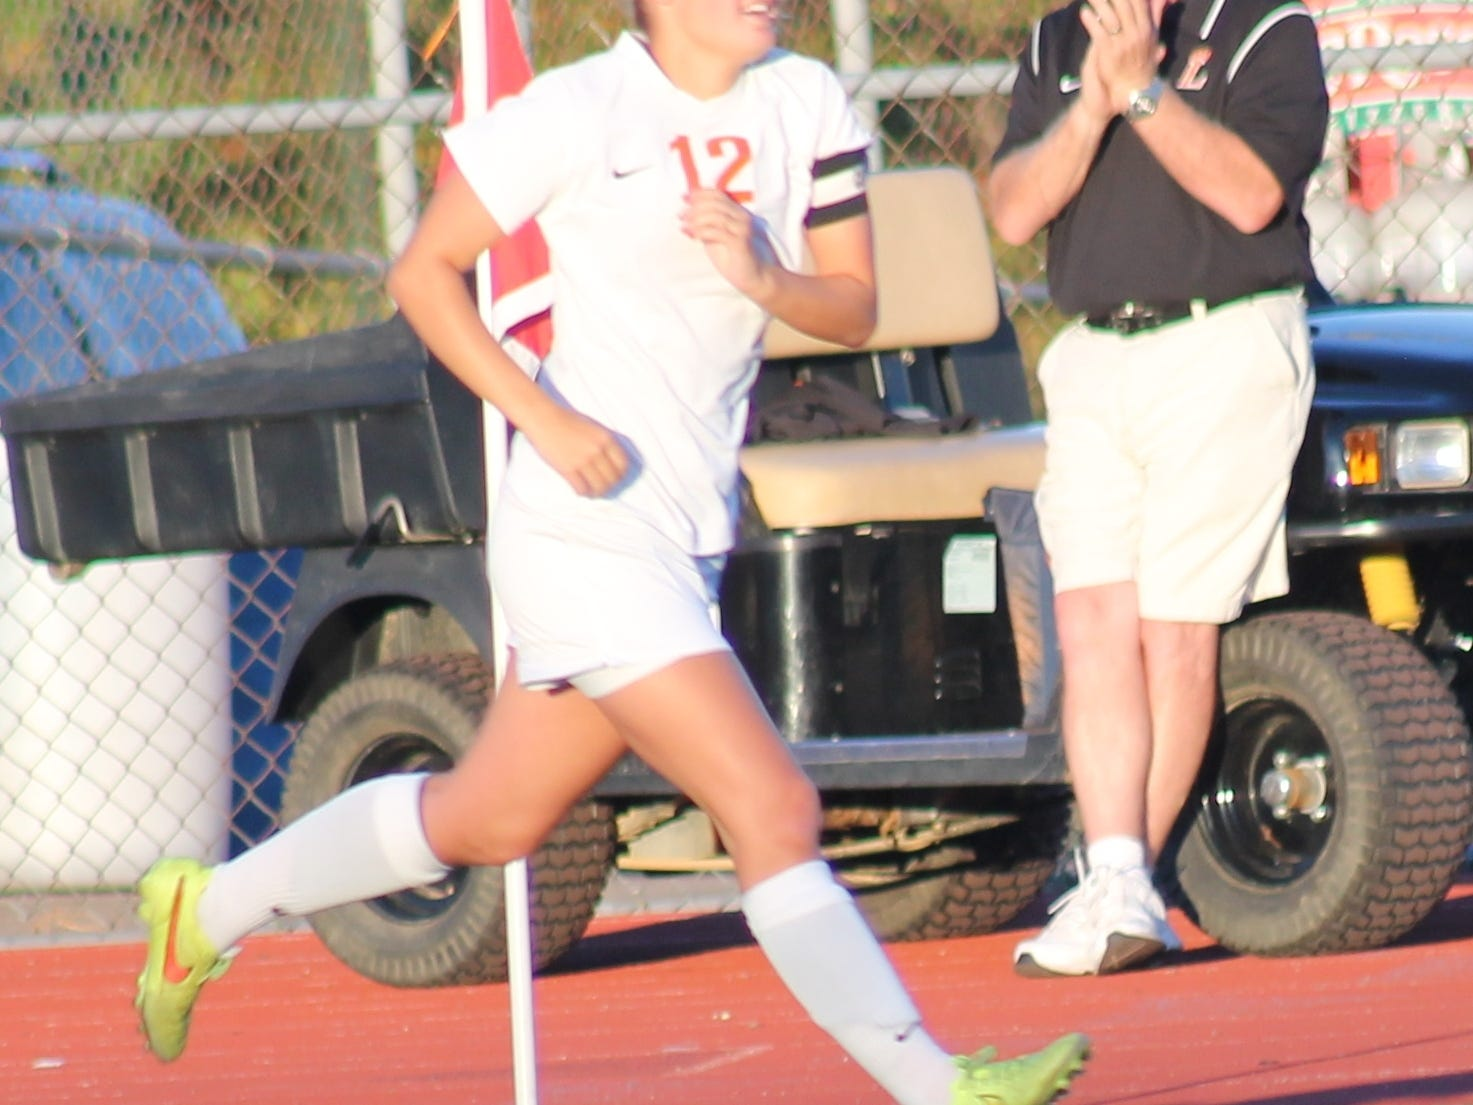 Loveland senior Haleigh Goedde runs on the field for the Lady Tigers in a September game against Walnut Hills. Goedde will continue her soccer career at Tiffin.